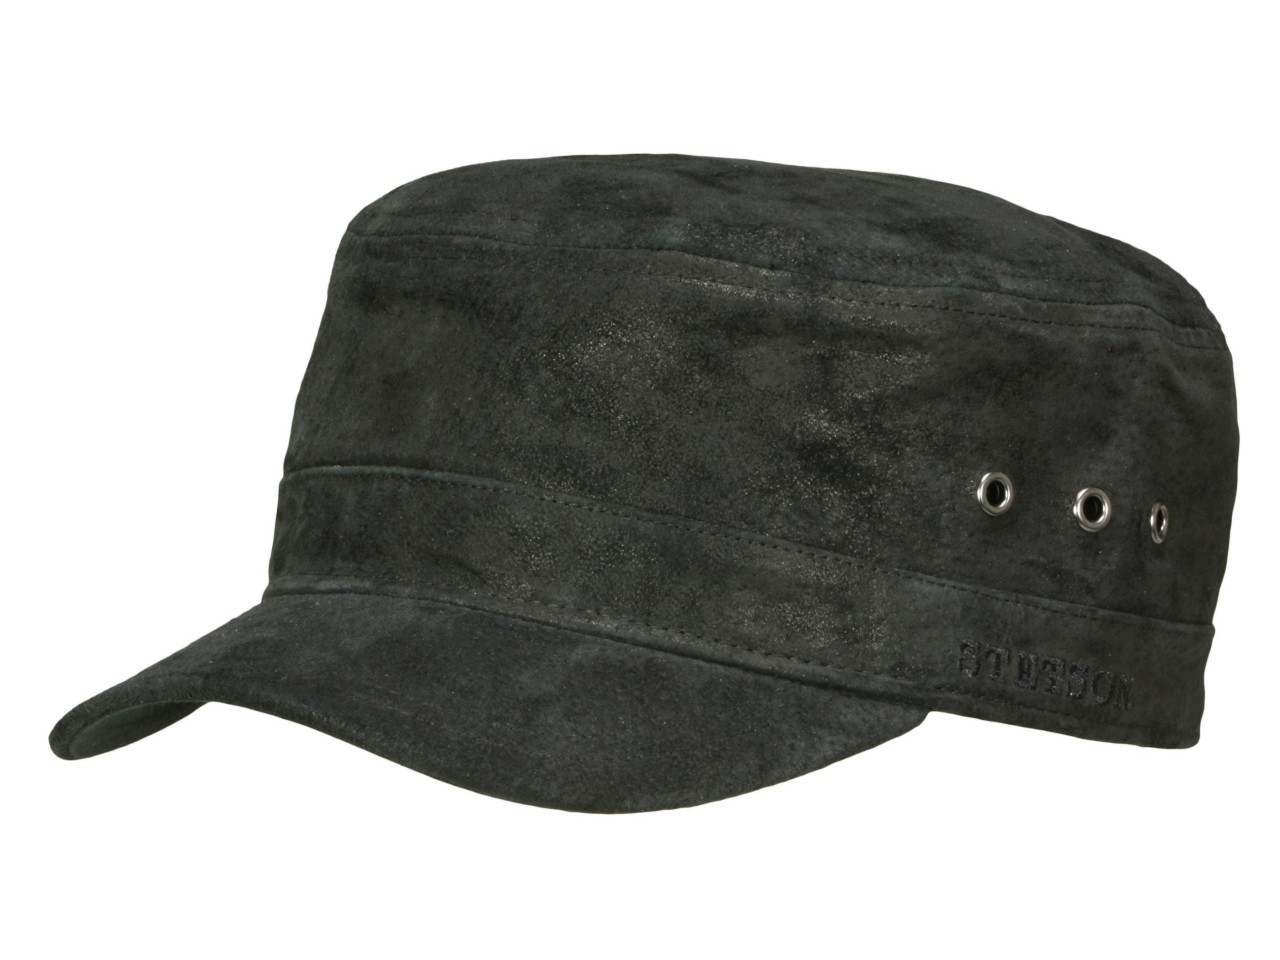 Stetson Raymore Pig Skin Armycap aus Leder